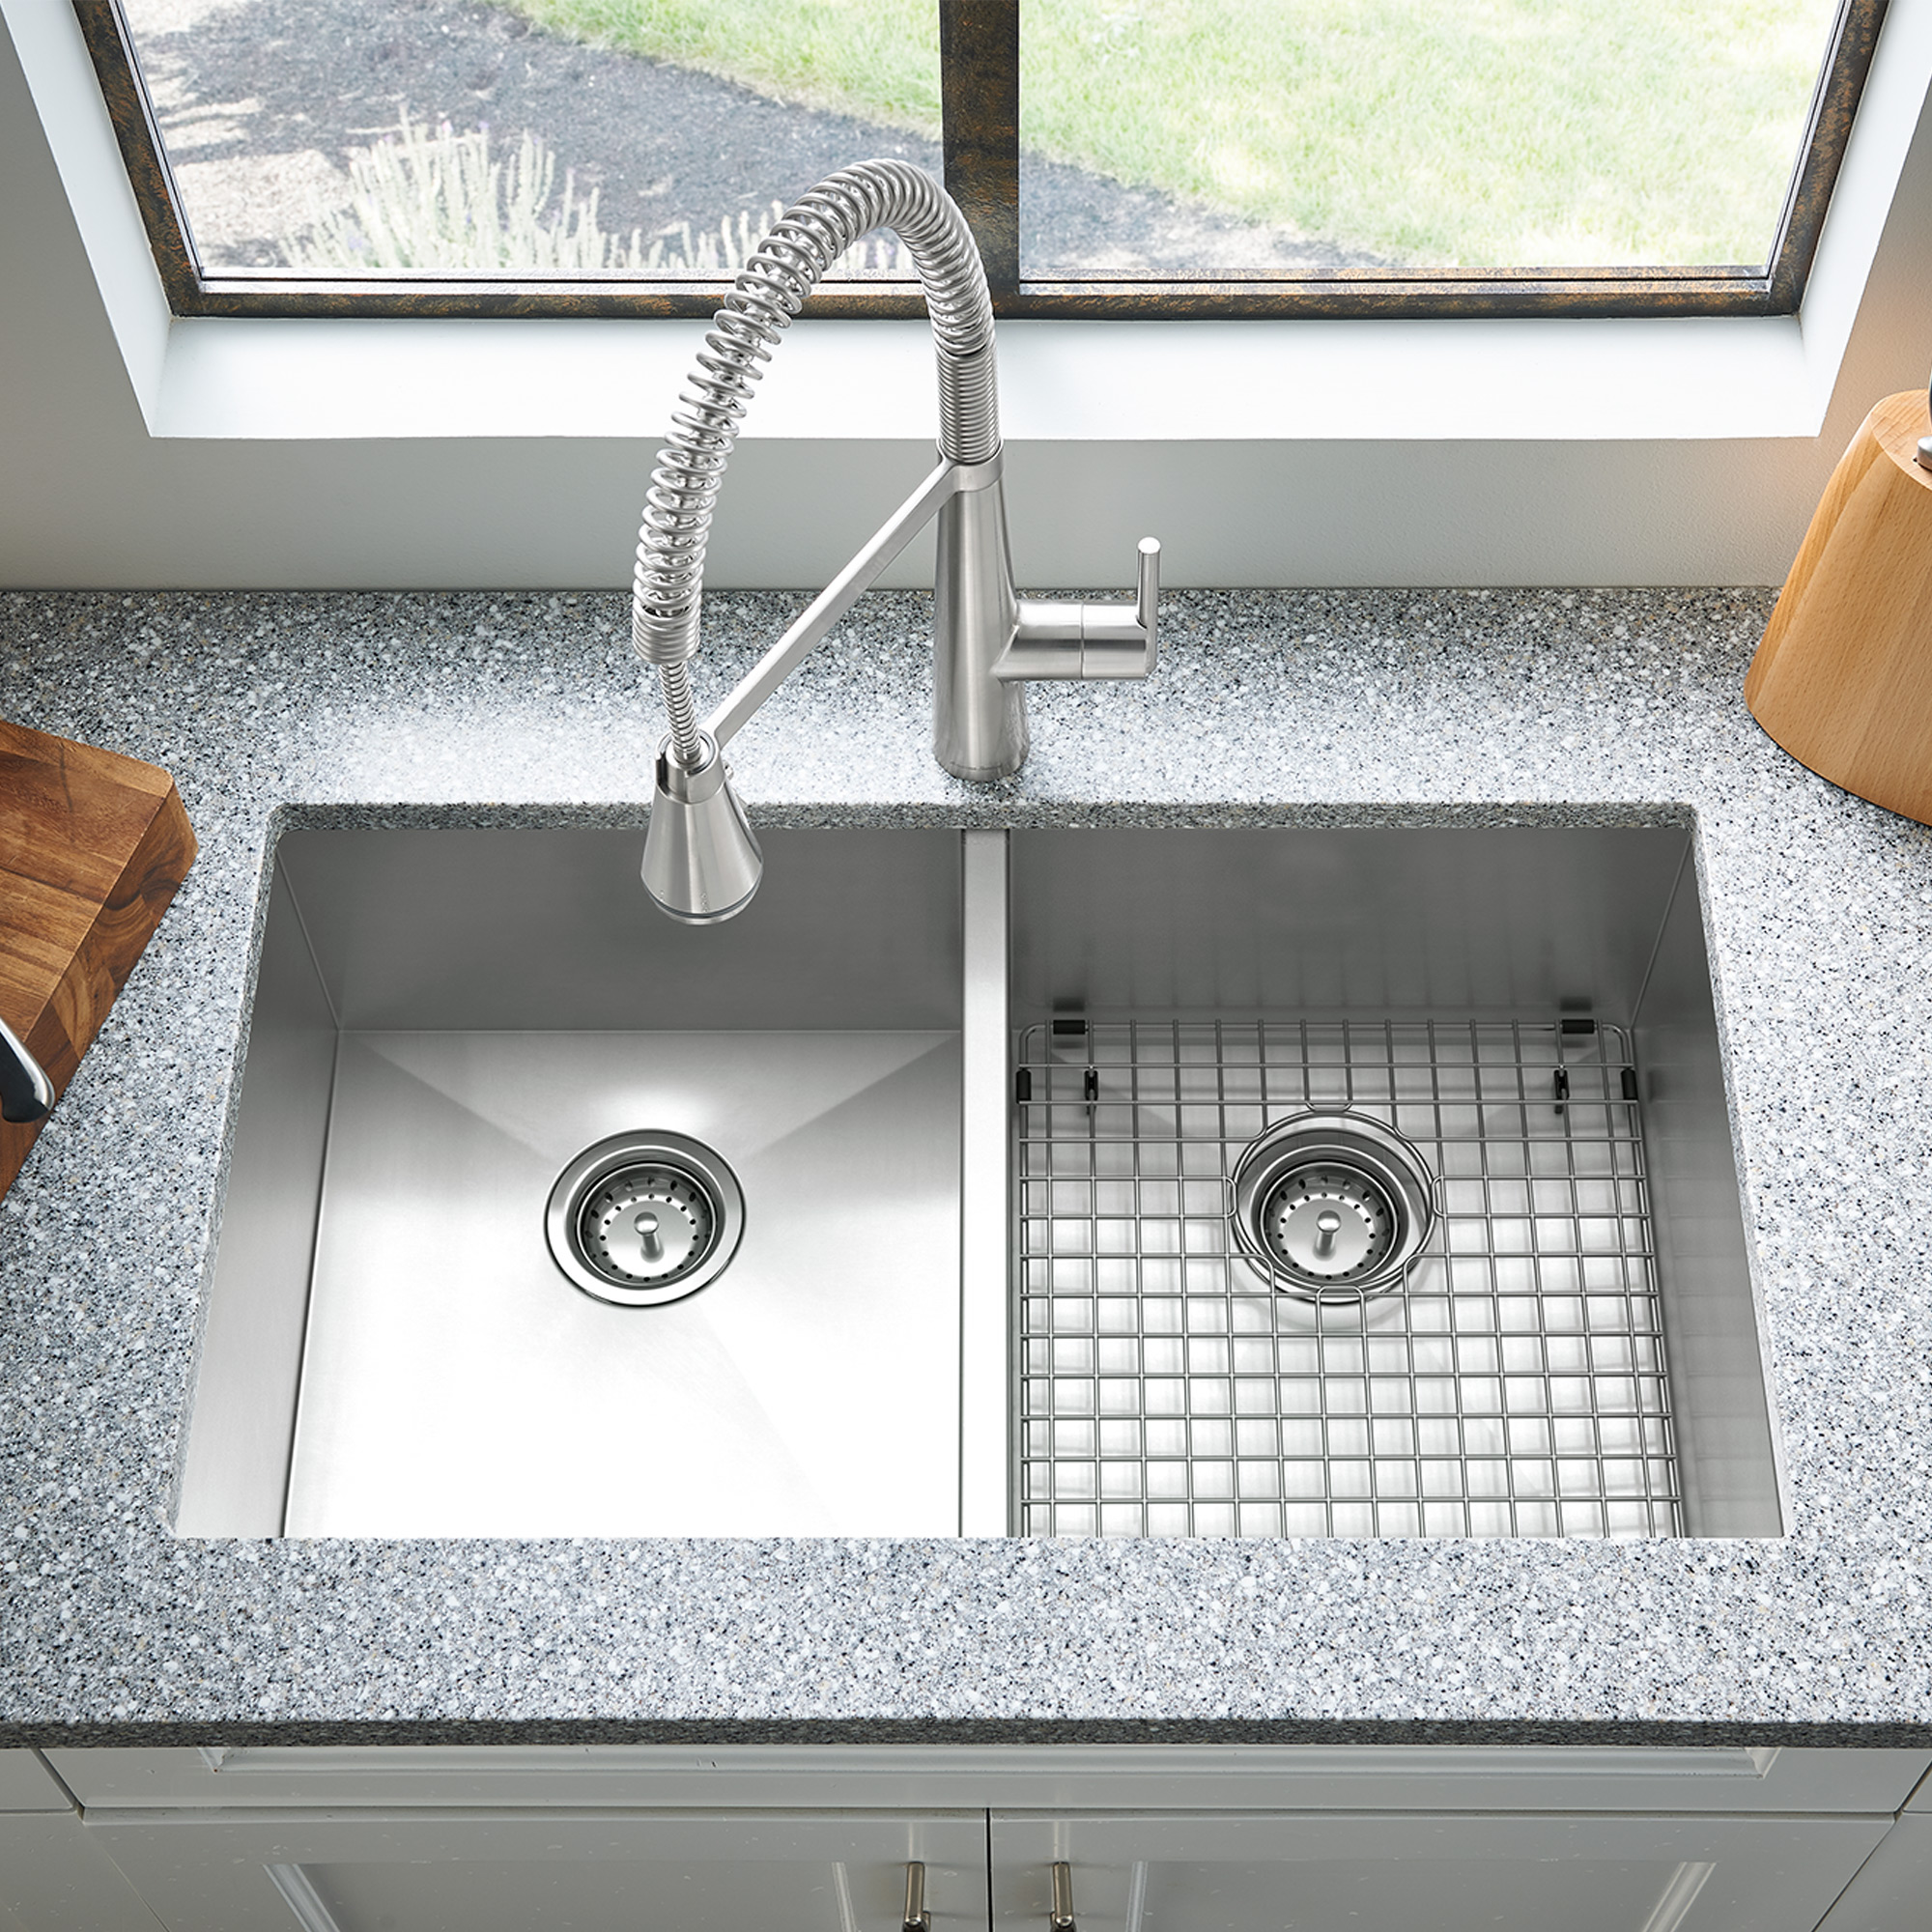 Edgewater 33x22 Double Bowl Stainless Steel Kitchen Sink | American